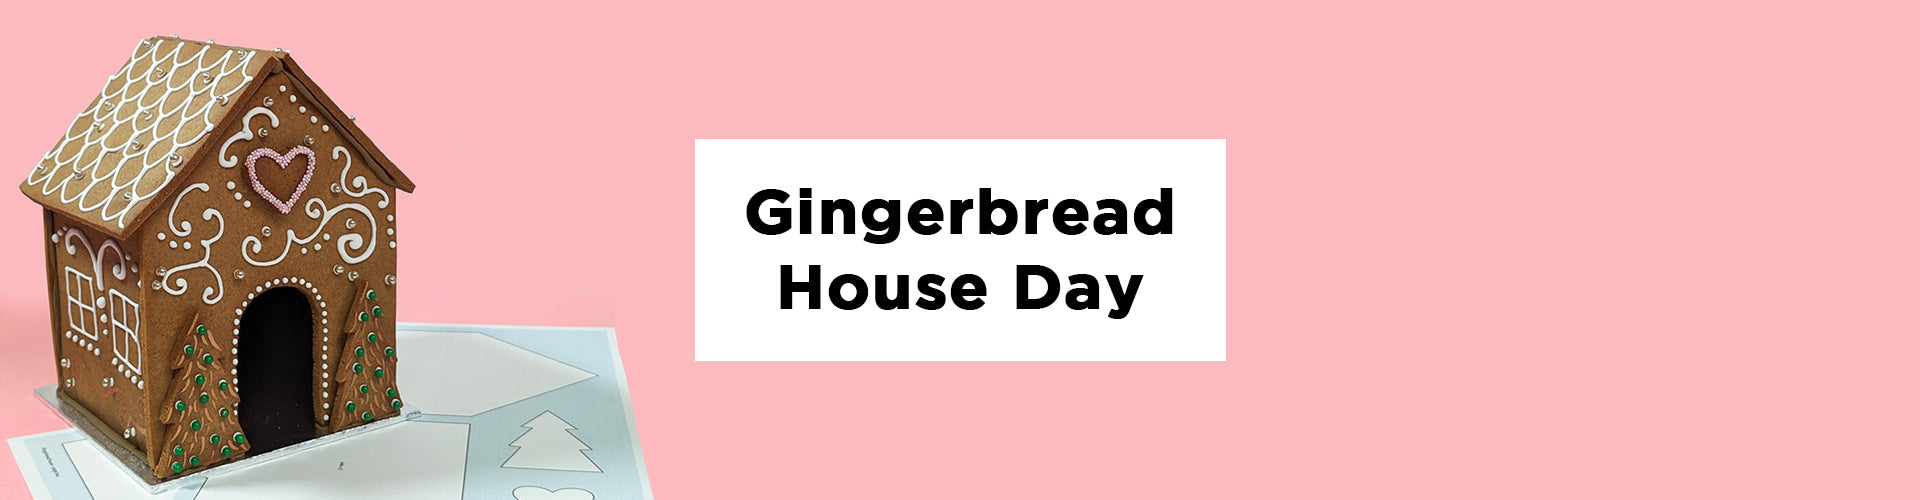 A Gingerbread House tutorial with Maid of Gingerbread